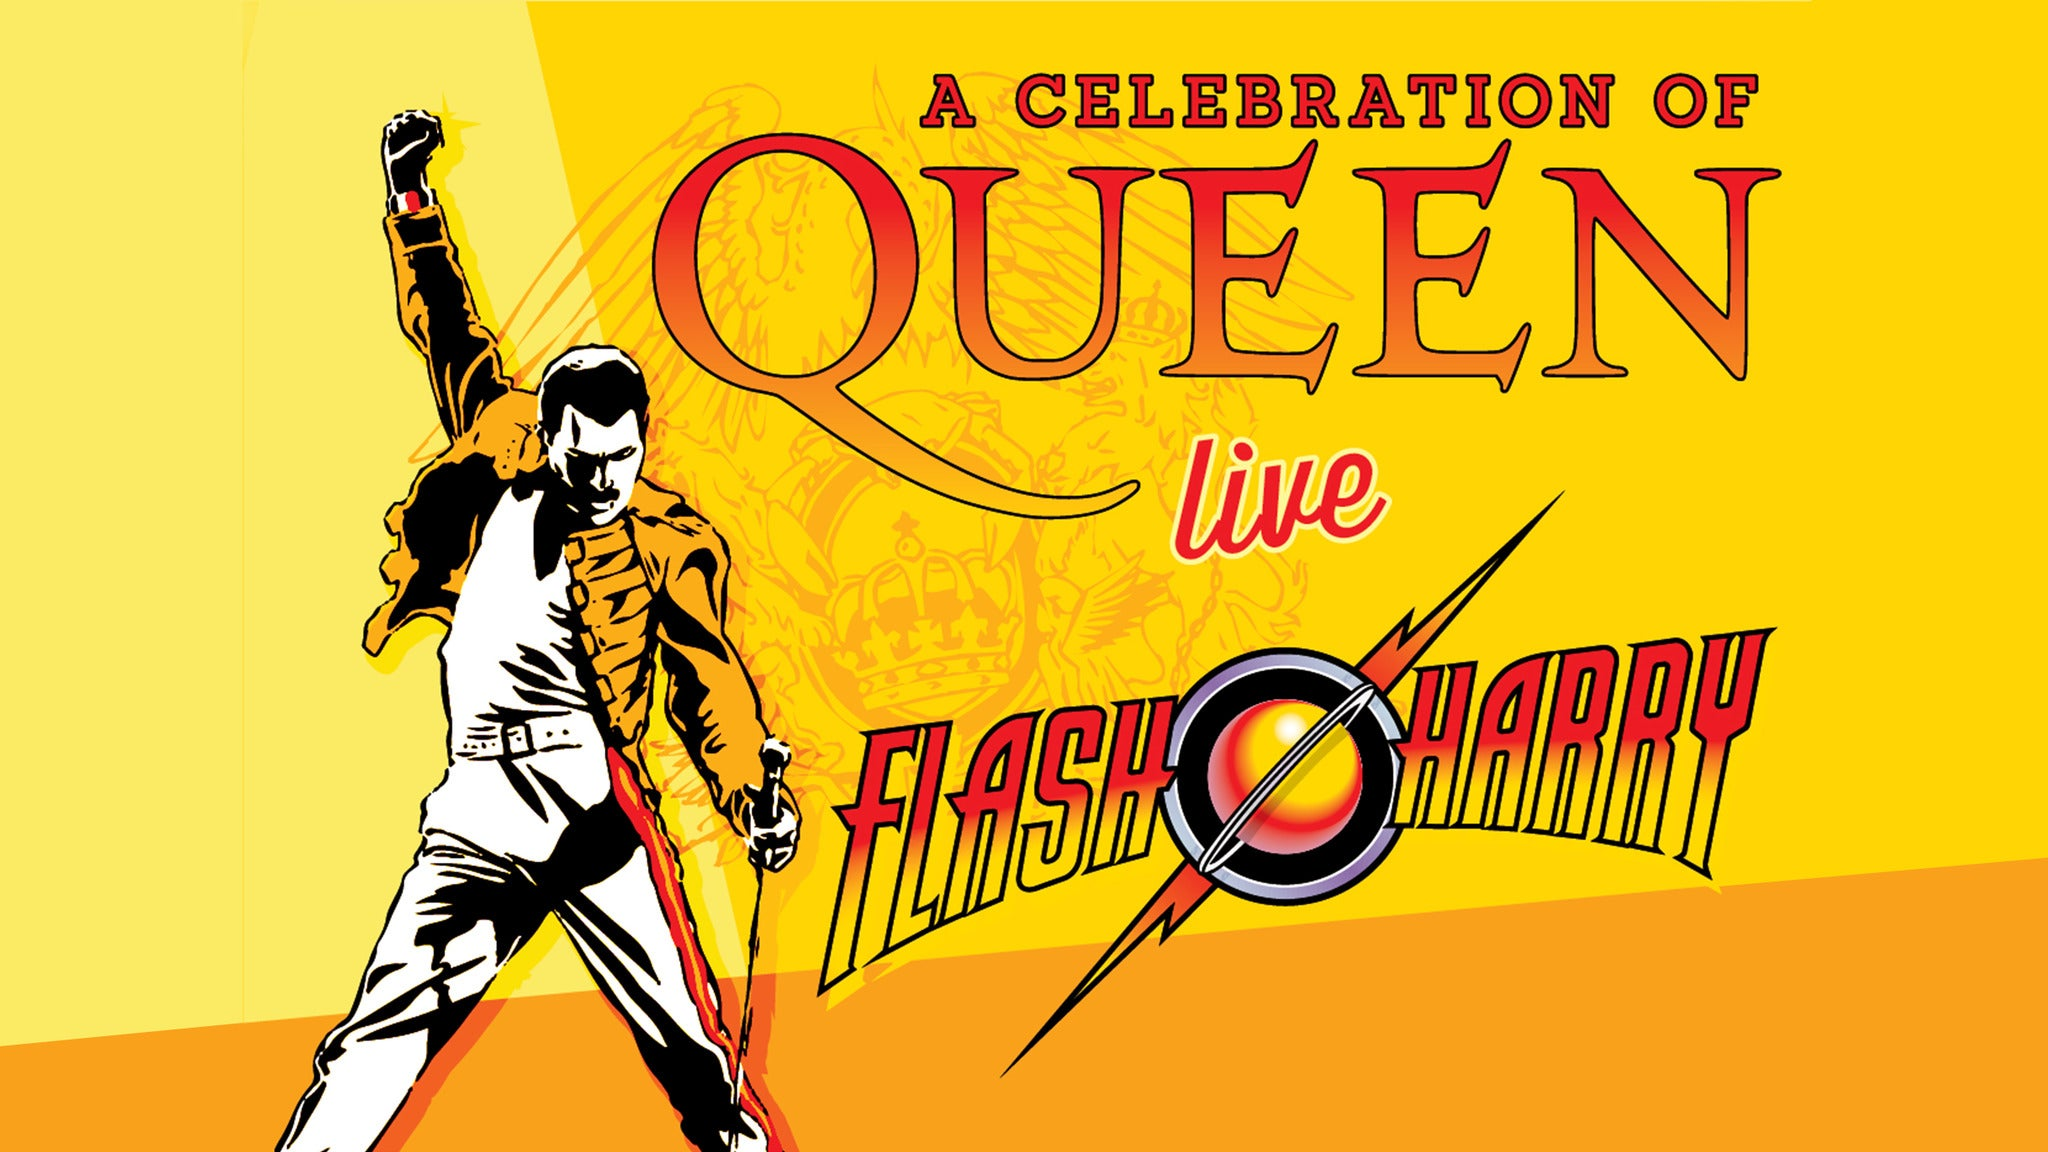 Flash Harry A Celebration of Queen